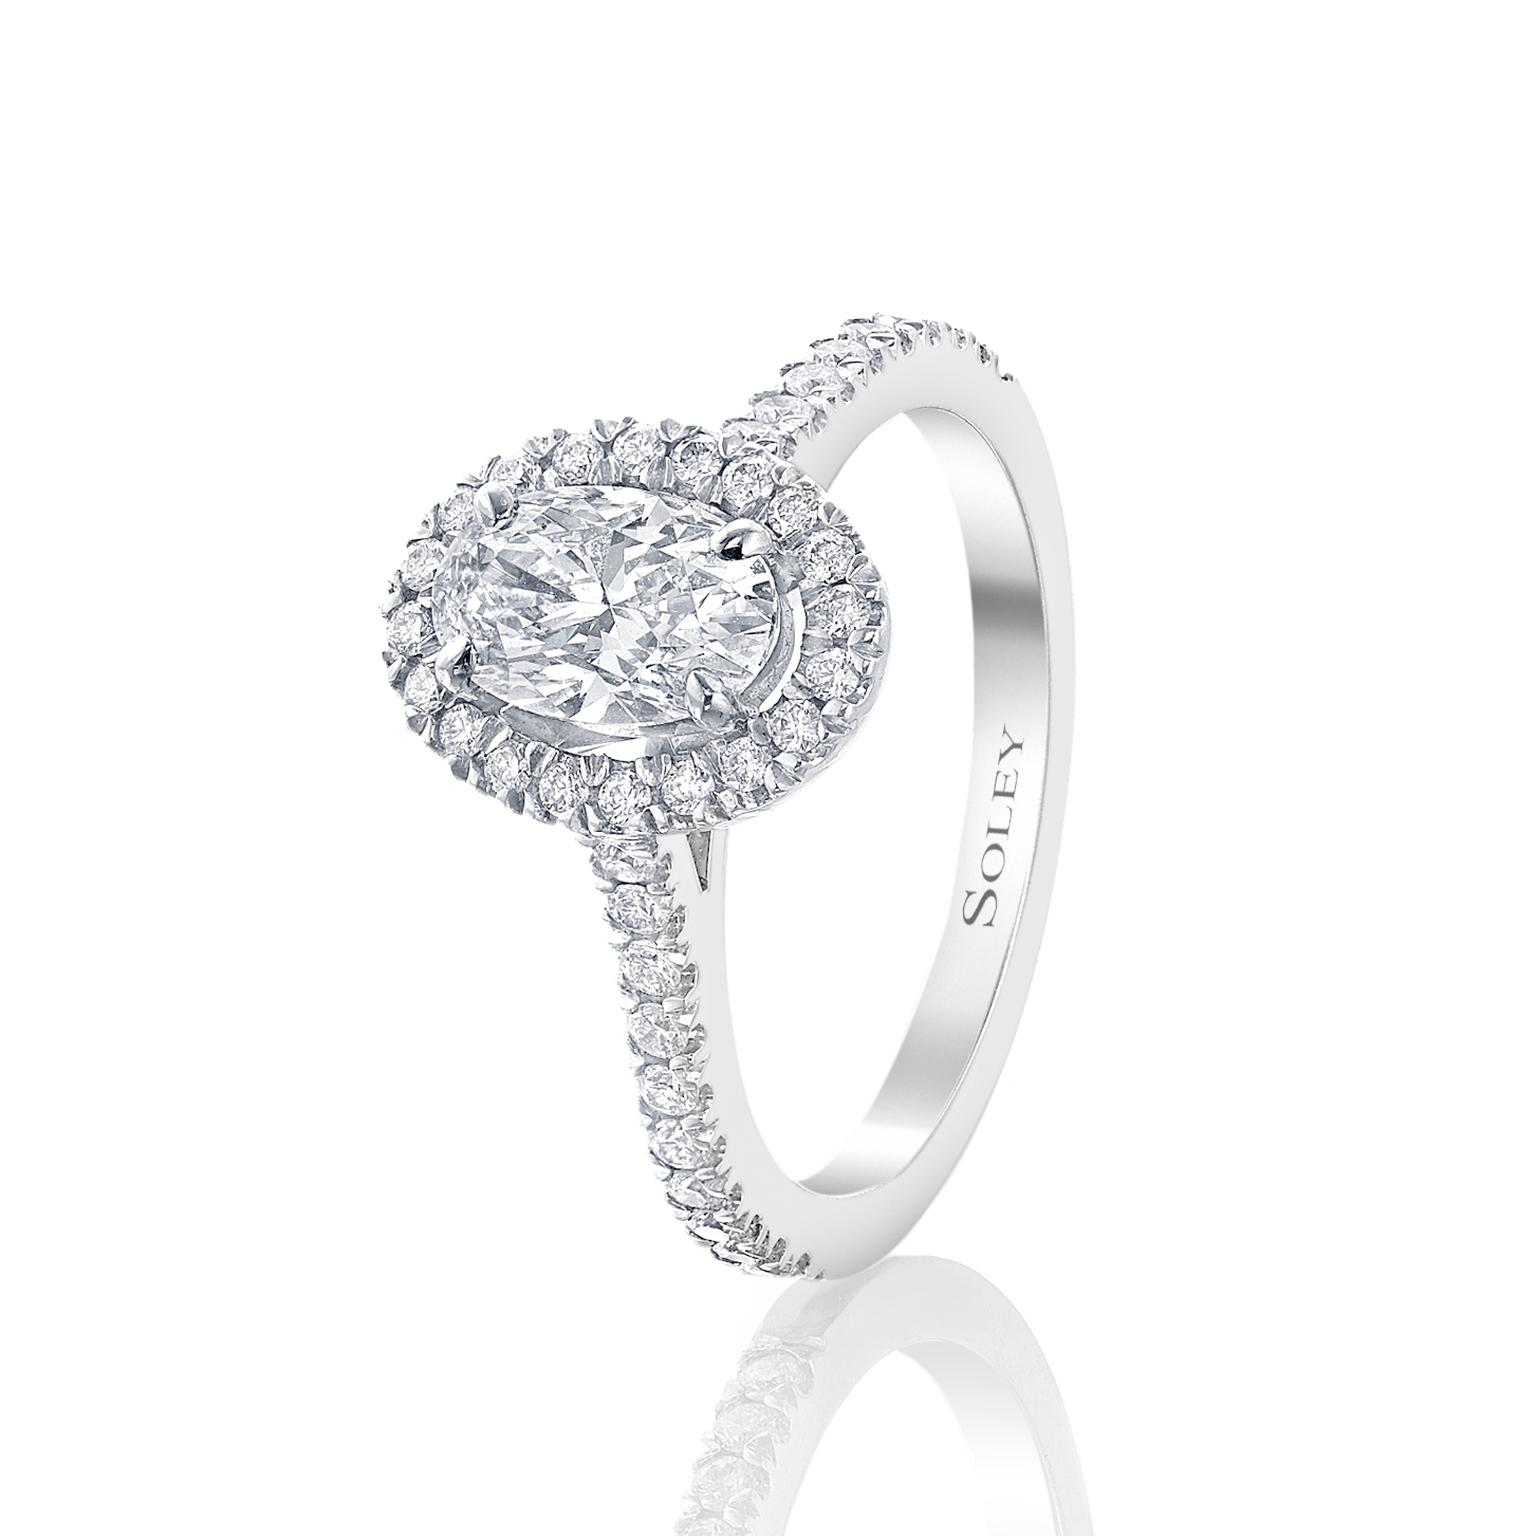 Soley London oval cut diamond engagement ring